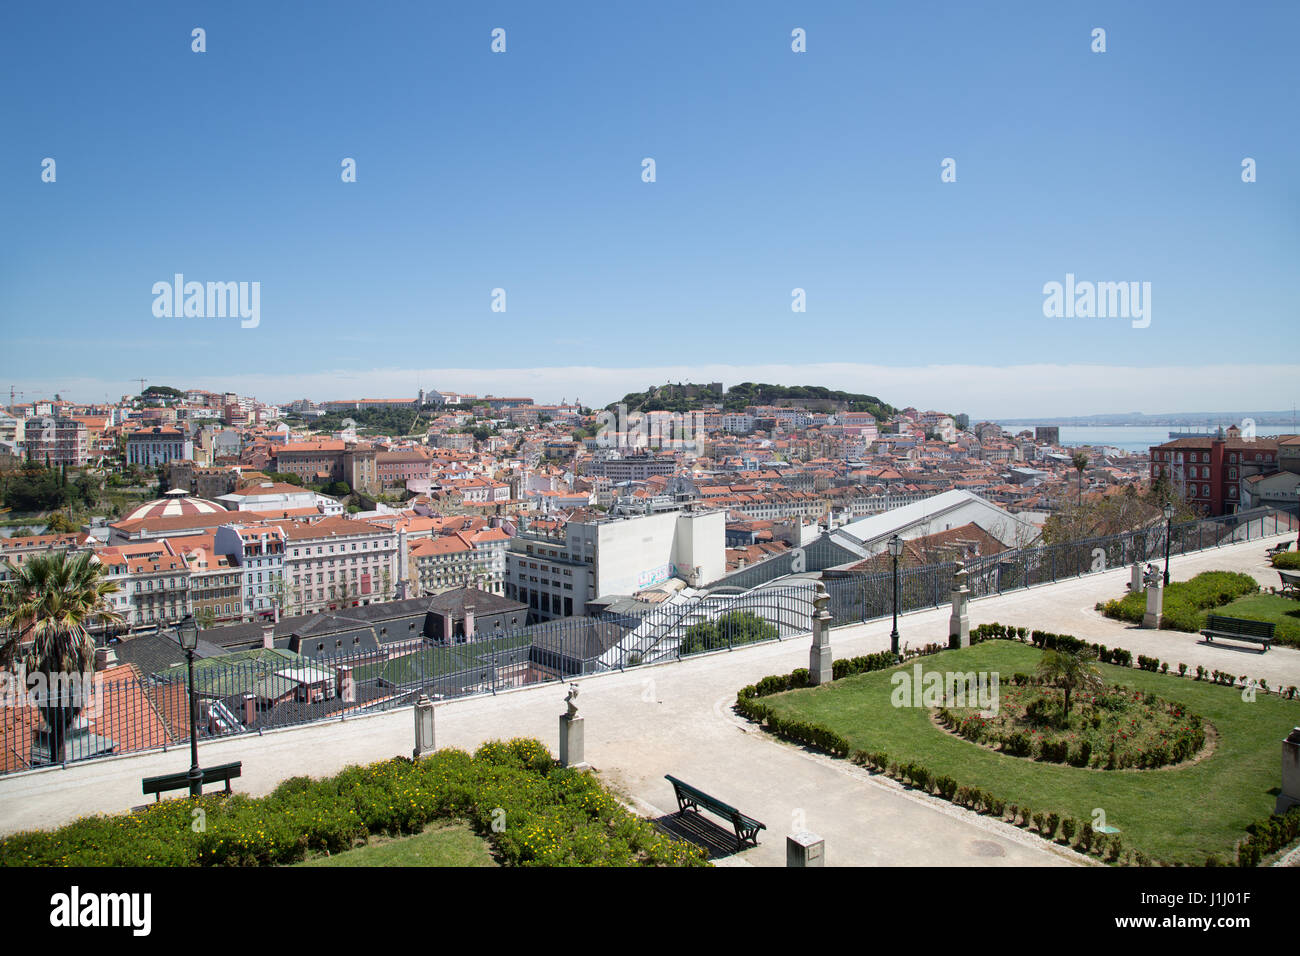 A view over the city of Lisbon, Portugal. - Stock Image